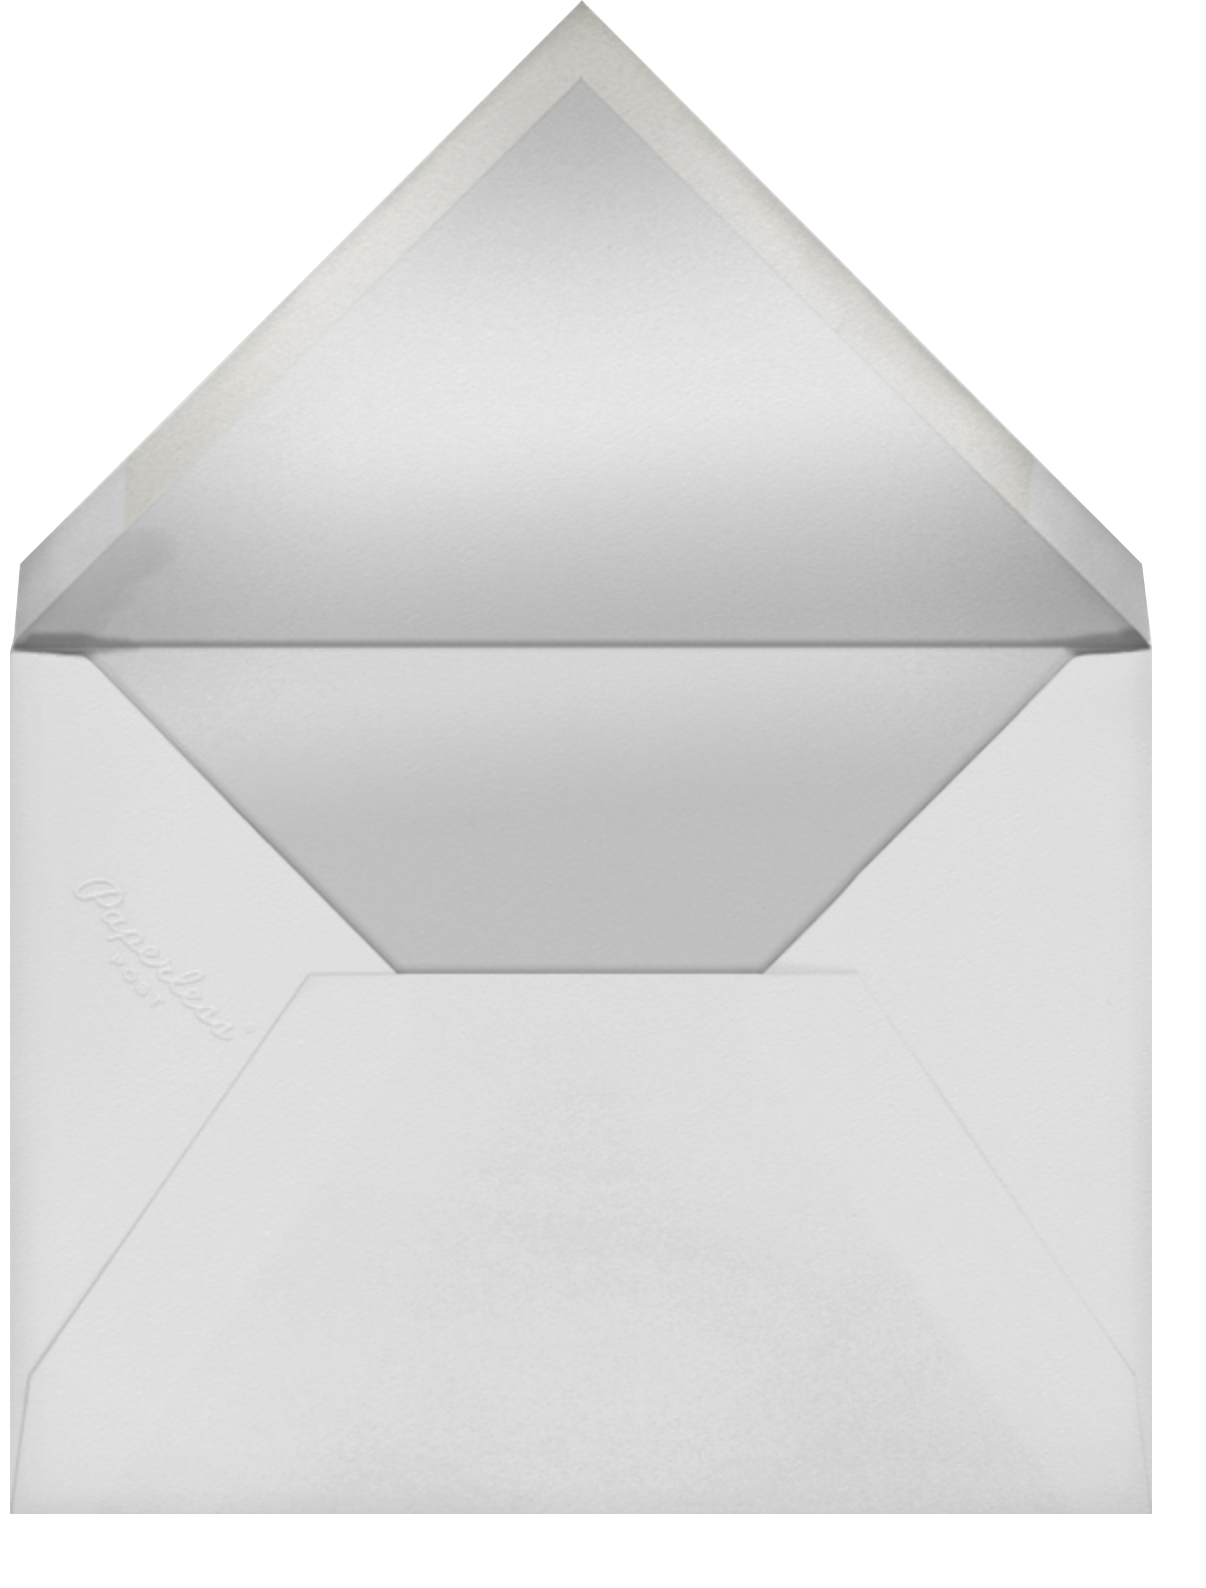 You Go First - Paperless Post - Envelope